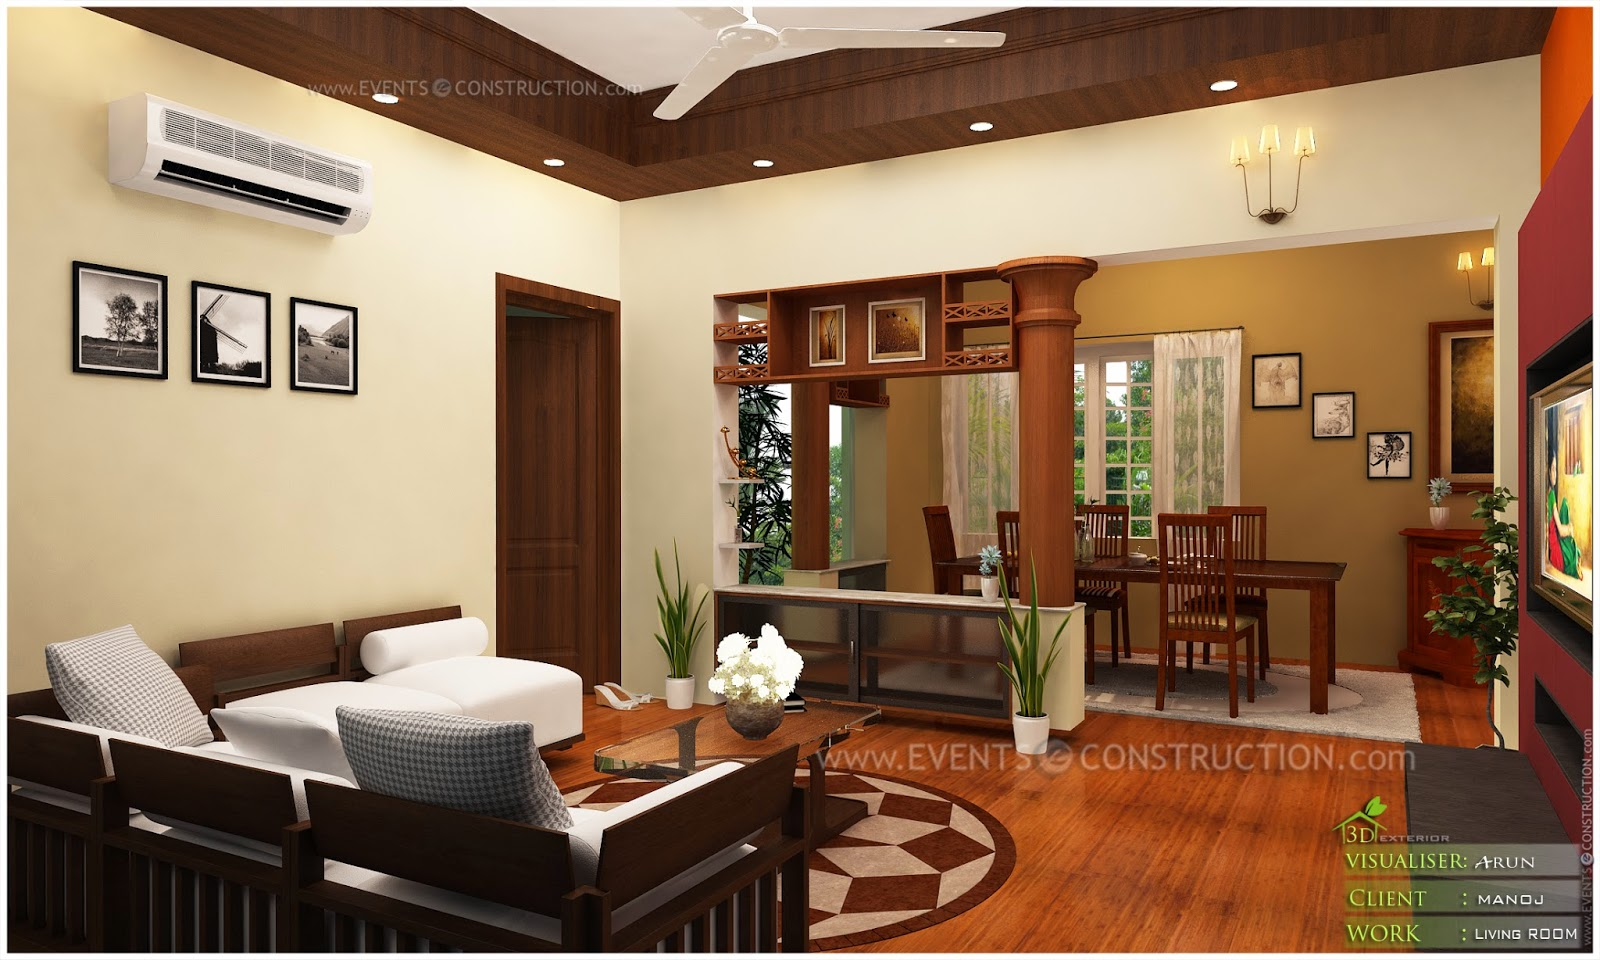 Evens Construction Pvt Ltd: Living Room Designed For